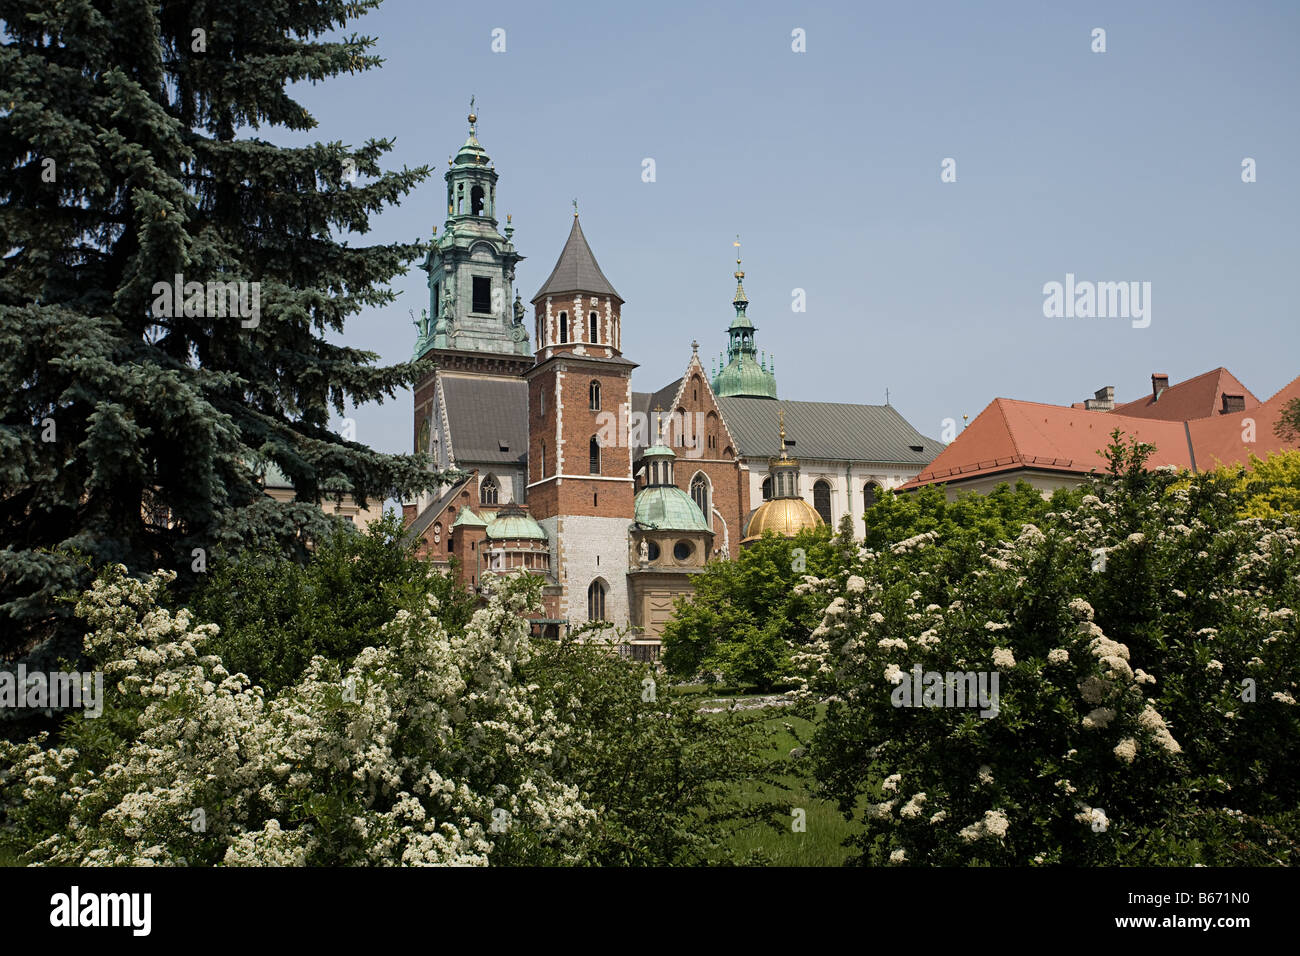 Wawel cathedral - Stock Image